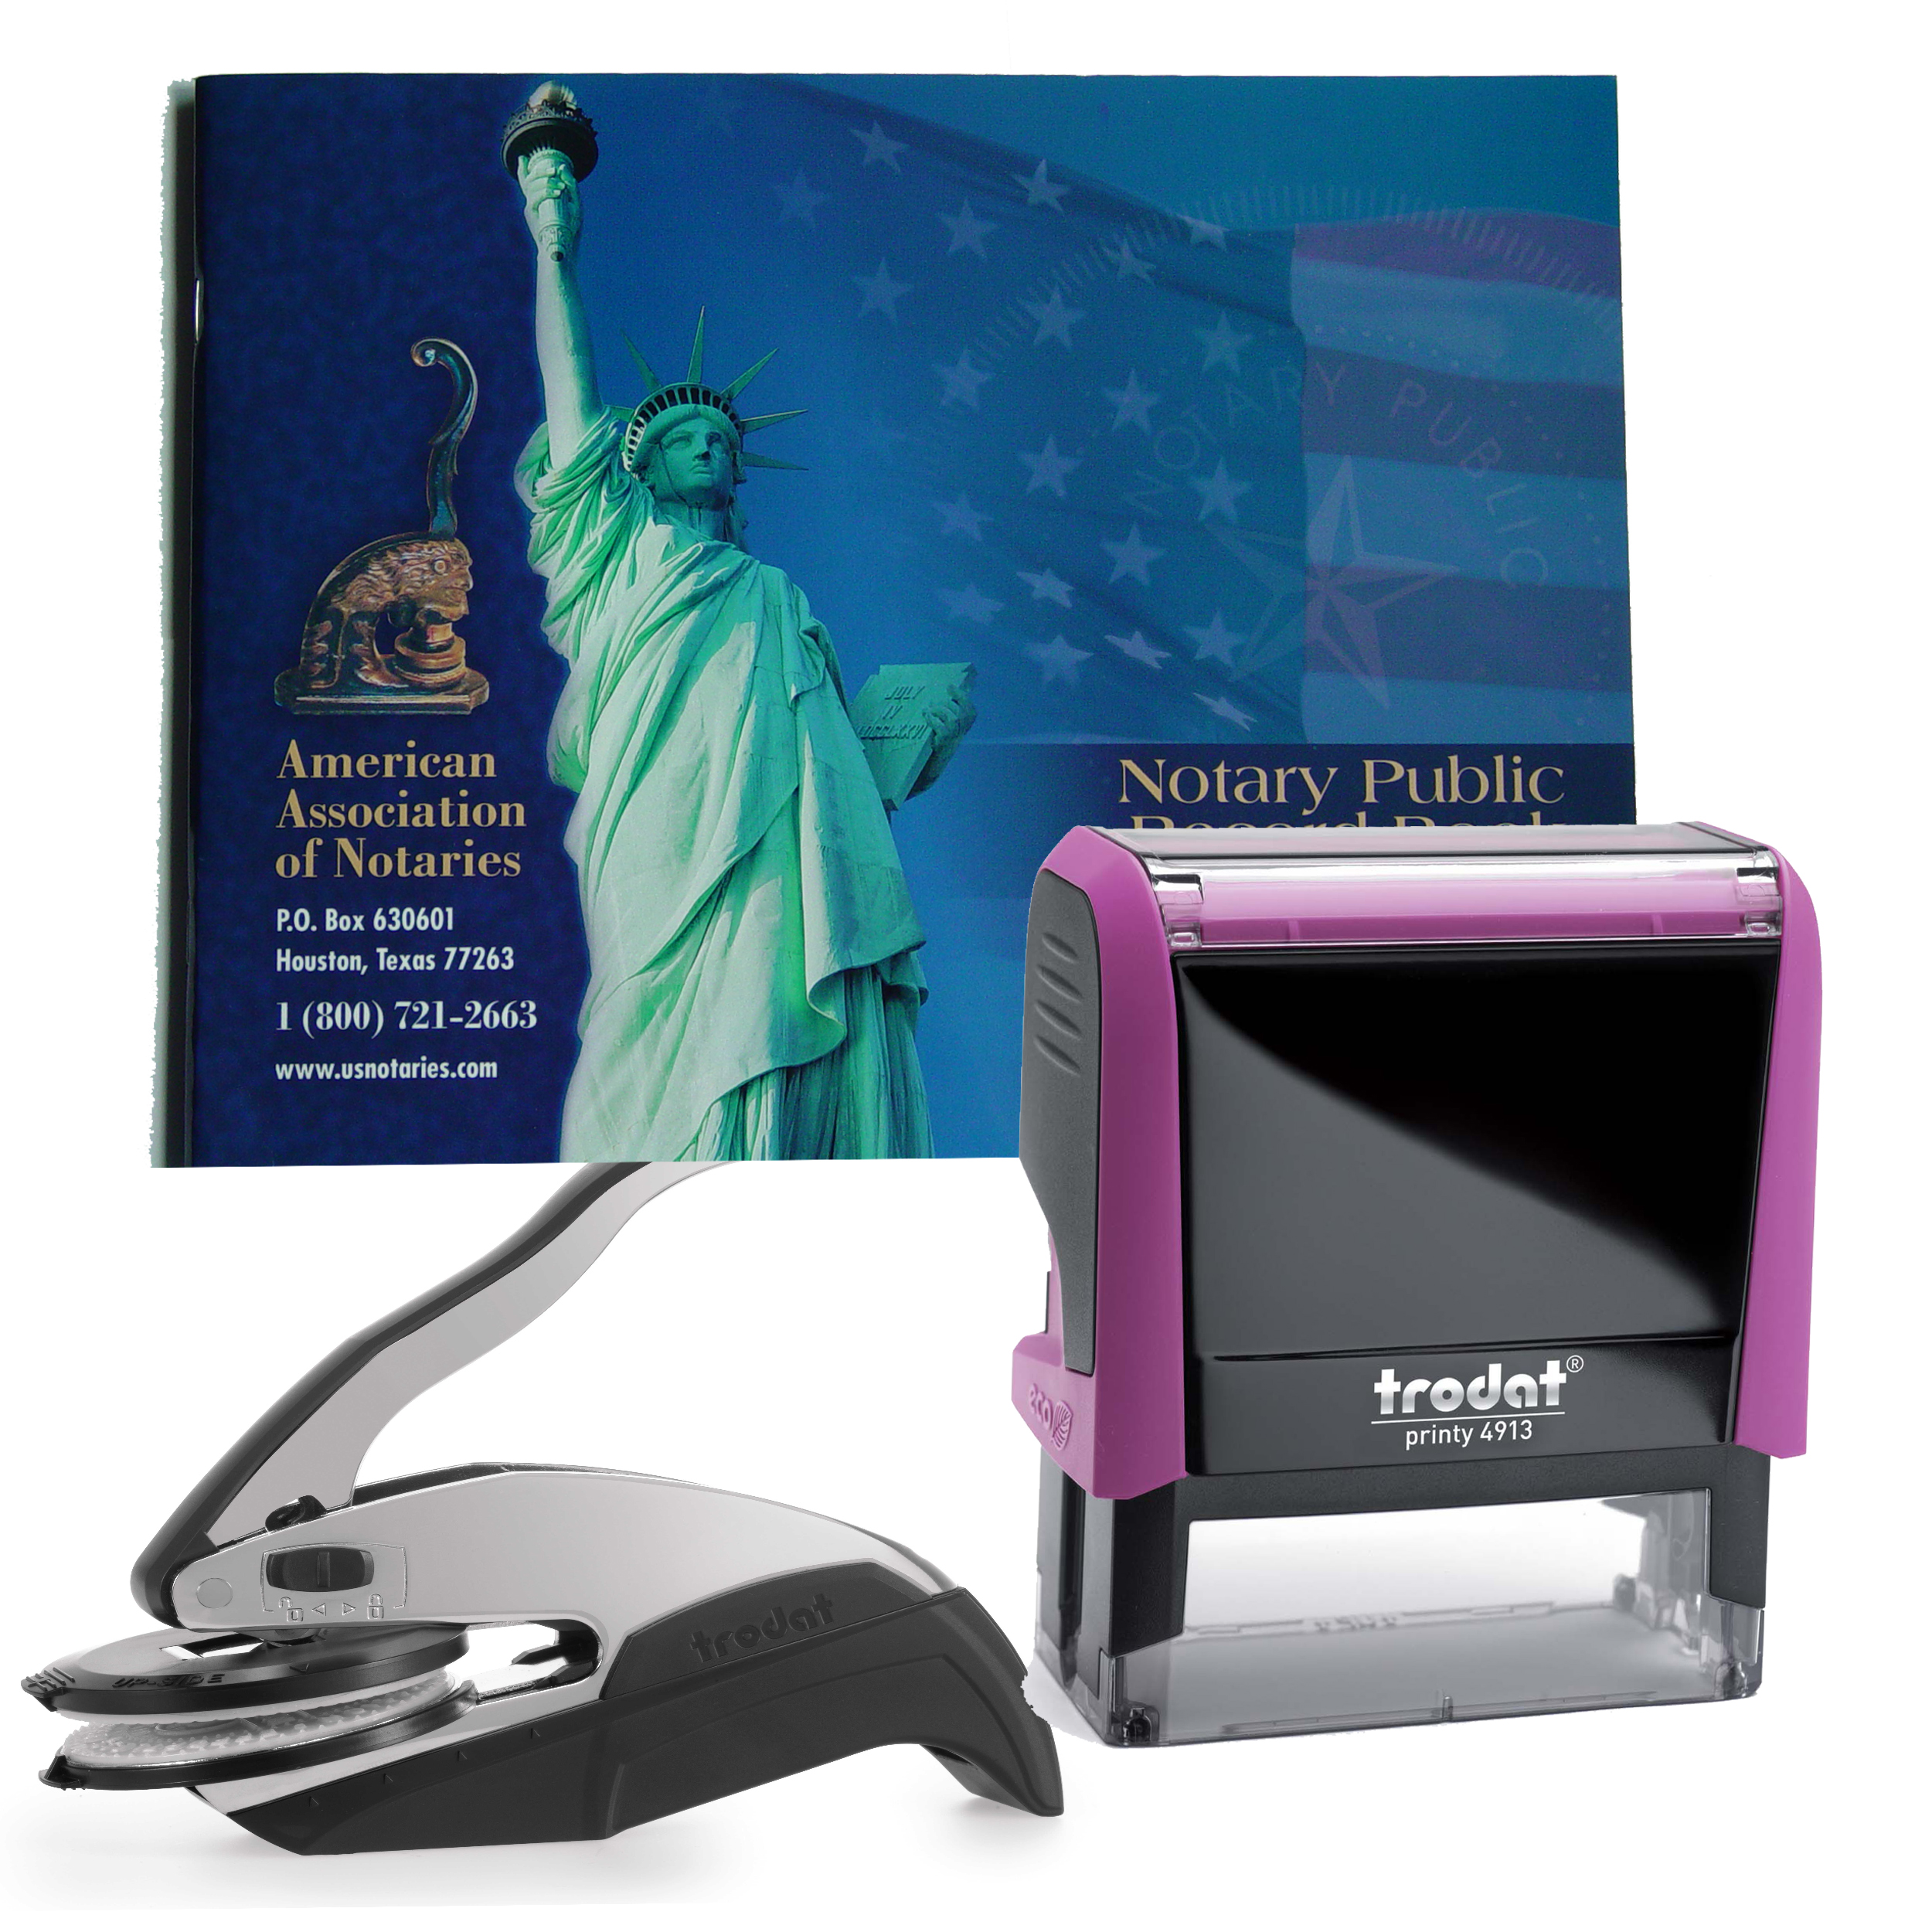 Arkansas Notary Supplies Deluxe Package - Trodat P4 Stamp and Choice of EZ OR Dual-use Embosser